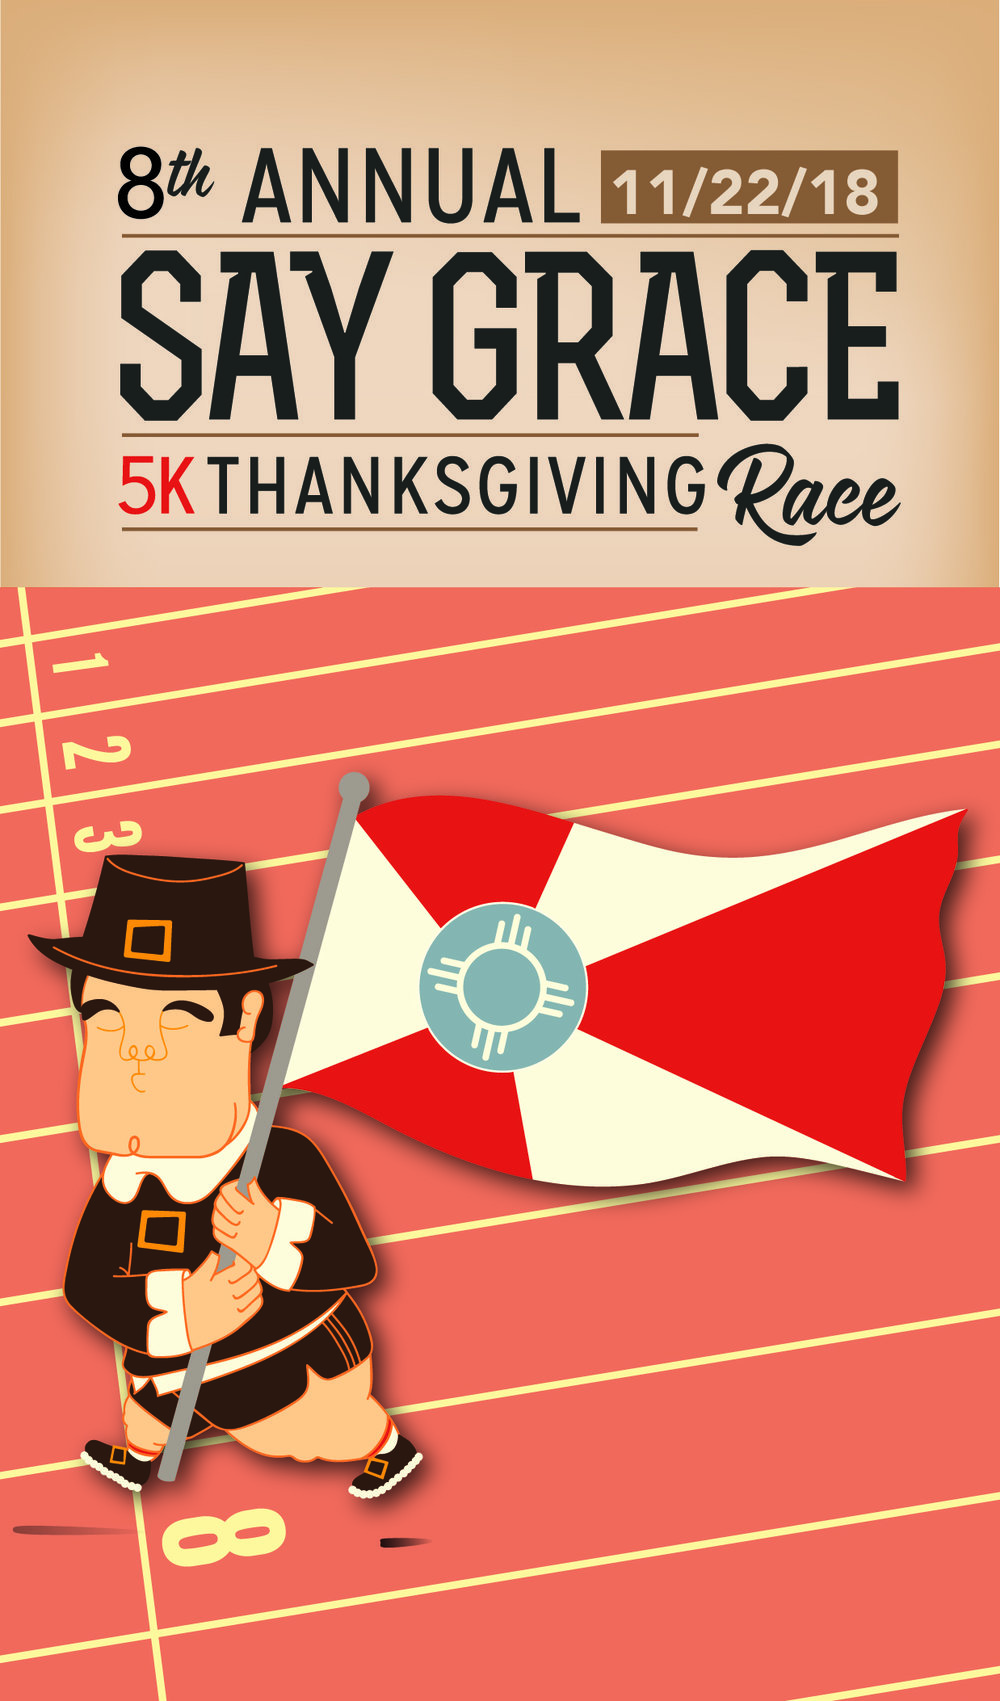 The Say Grace Race is GraceMed's signature fundraising event and is also Wichita's largest, local 5K. - The annual family-friendly event takes place on Thanksgiving morning at 9:30AM and is becoming a tradition for many in our community.